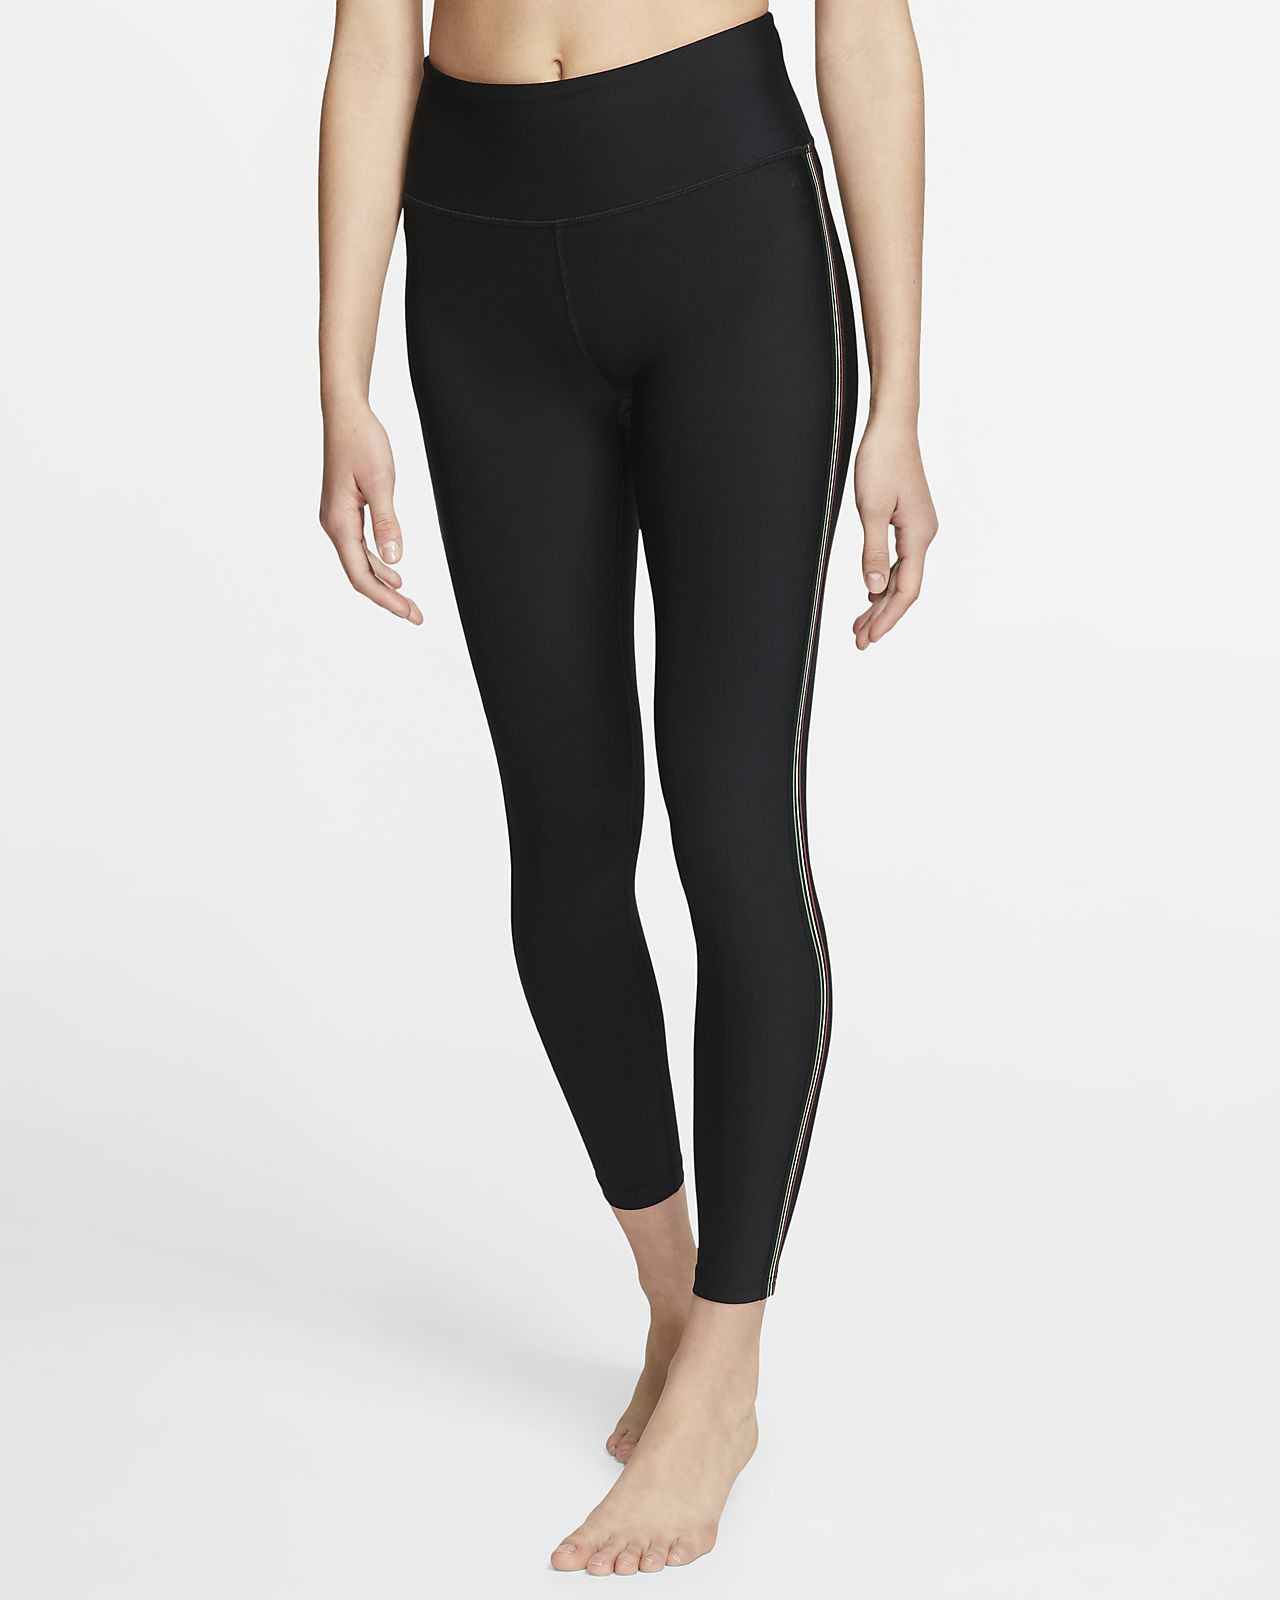 Hurley Quick Dry Jamaica surfeleggings til dame